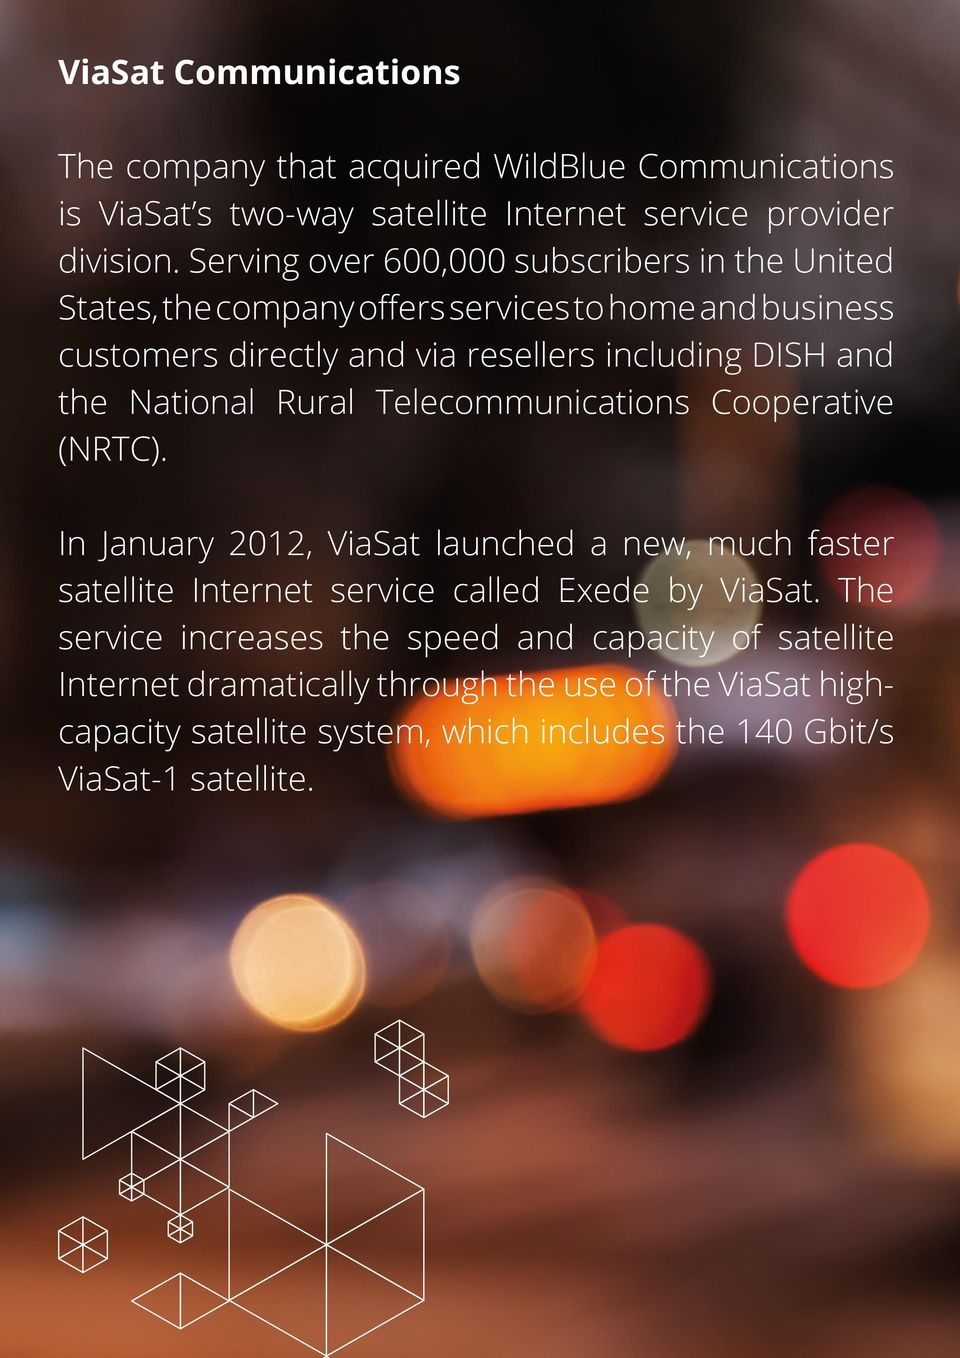 the National Rural Telecommunications Cooperative (NRTC). In January 2012, ViaSat launched a new, much faster satellite Internet service called Exede by ViaSat.